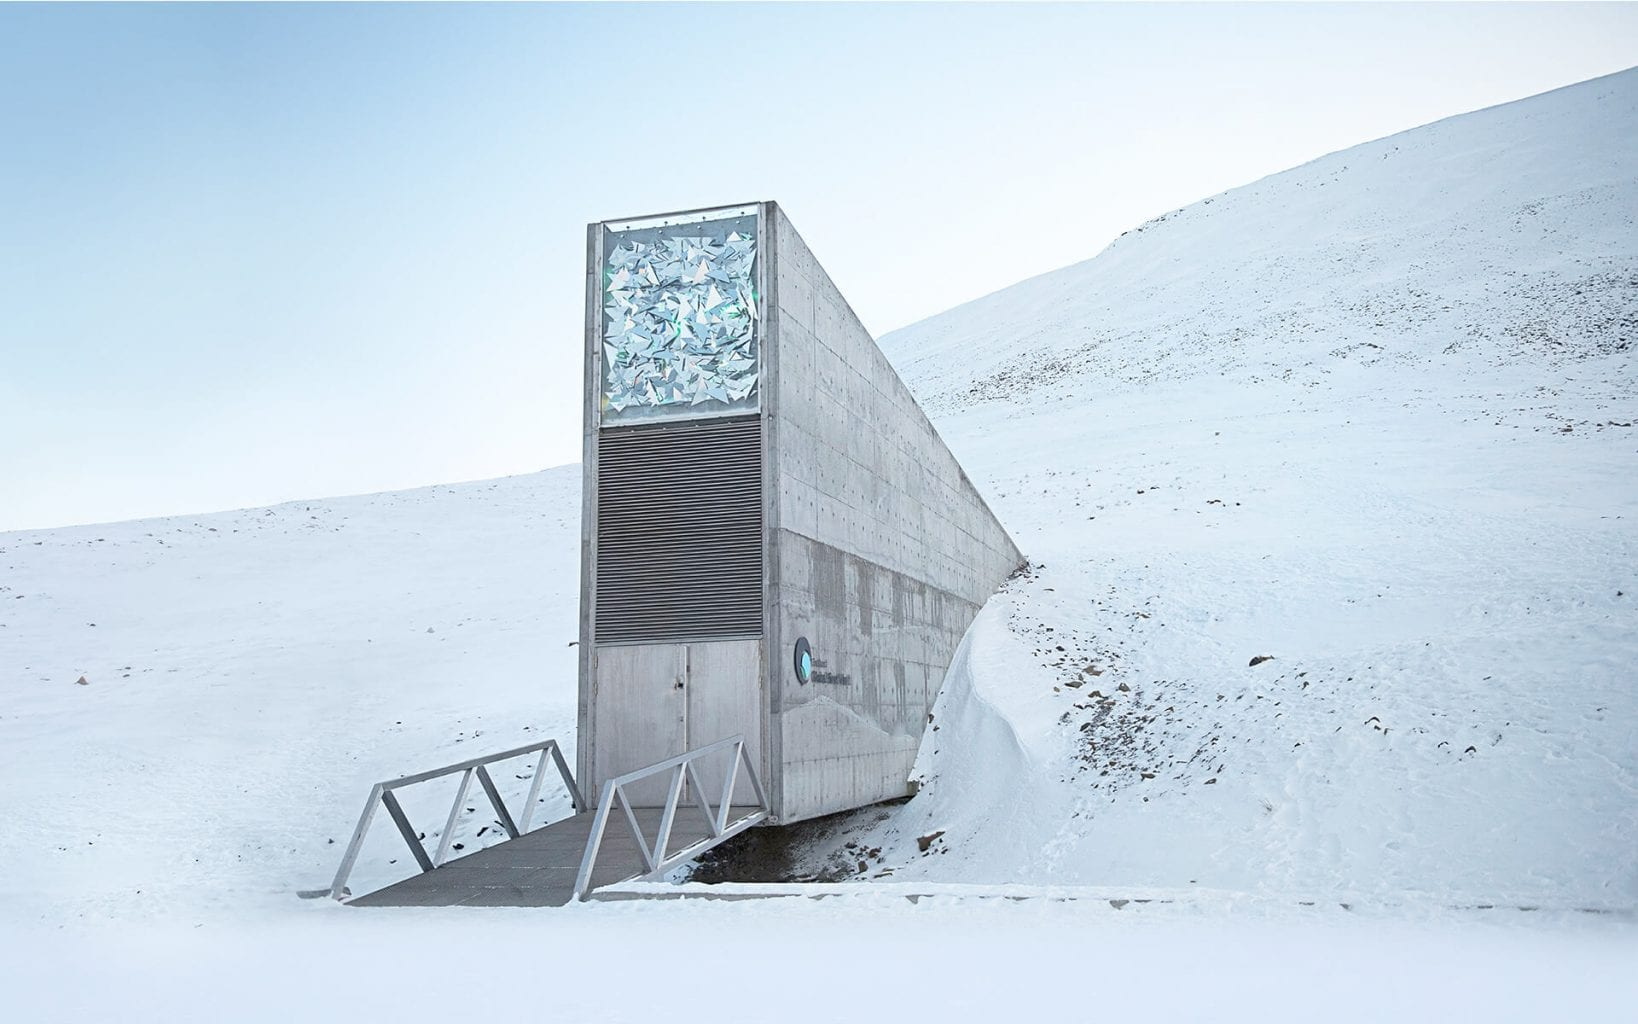 The Global Seed Bank facility in the Norwegian archipelago of Svalbard. Credit: The Crop Trust